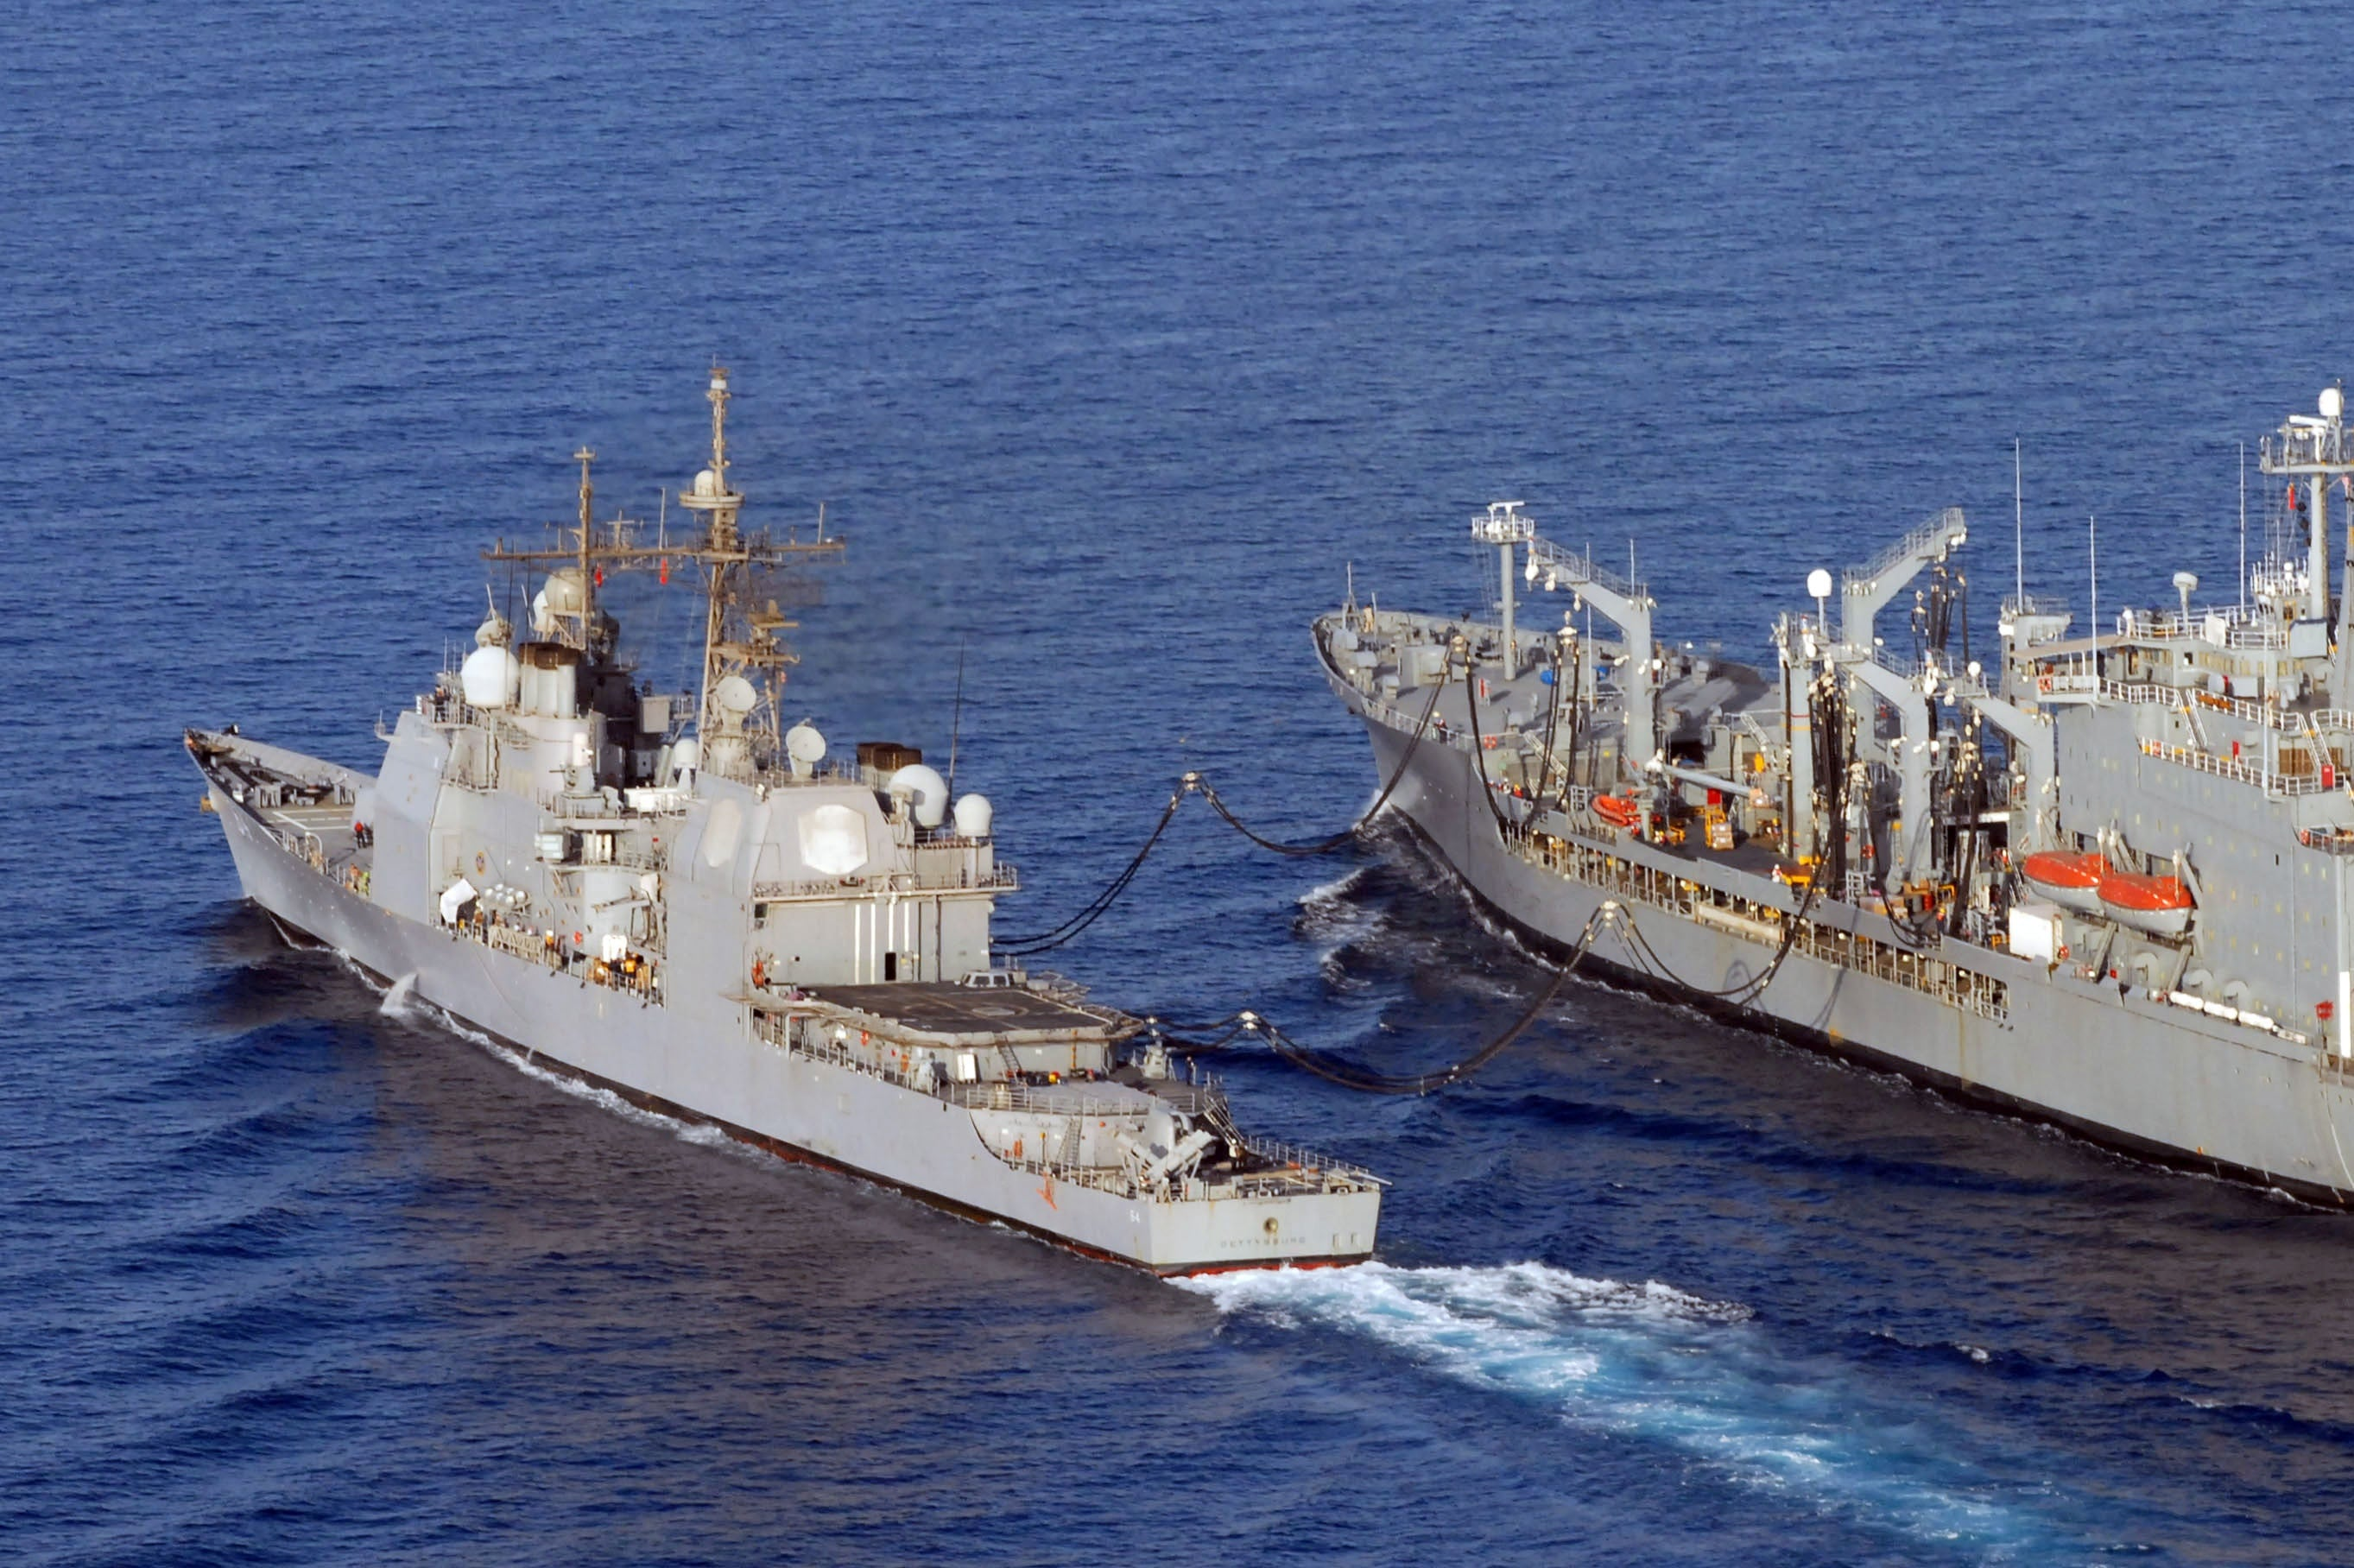 "USS Gettysburg CG-64 Conducts an Underway Replenishment with USNS Walter S. Diehl T-AO 193 - 4"" x 6"" Photograph"